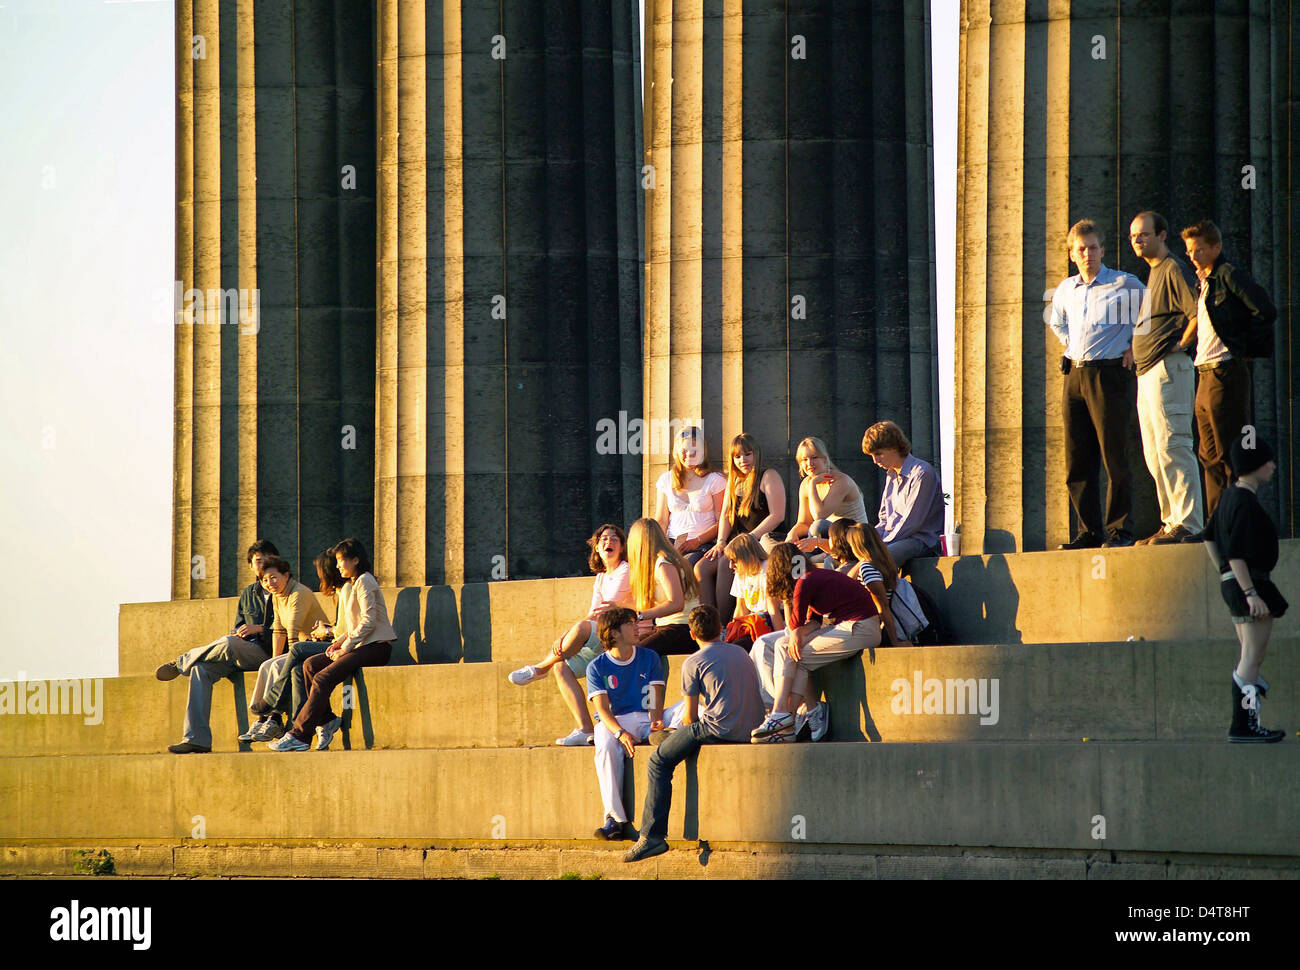 pillars of national monument - calton hill with sun soaked tourists - Stock Image